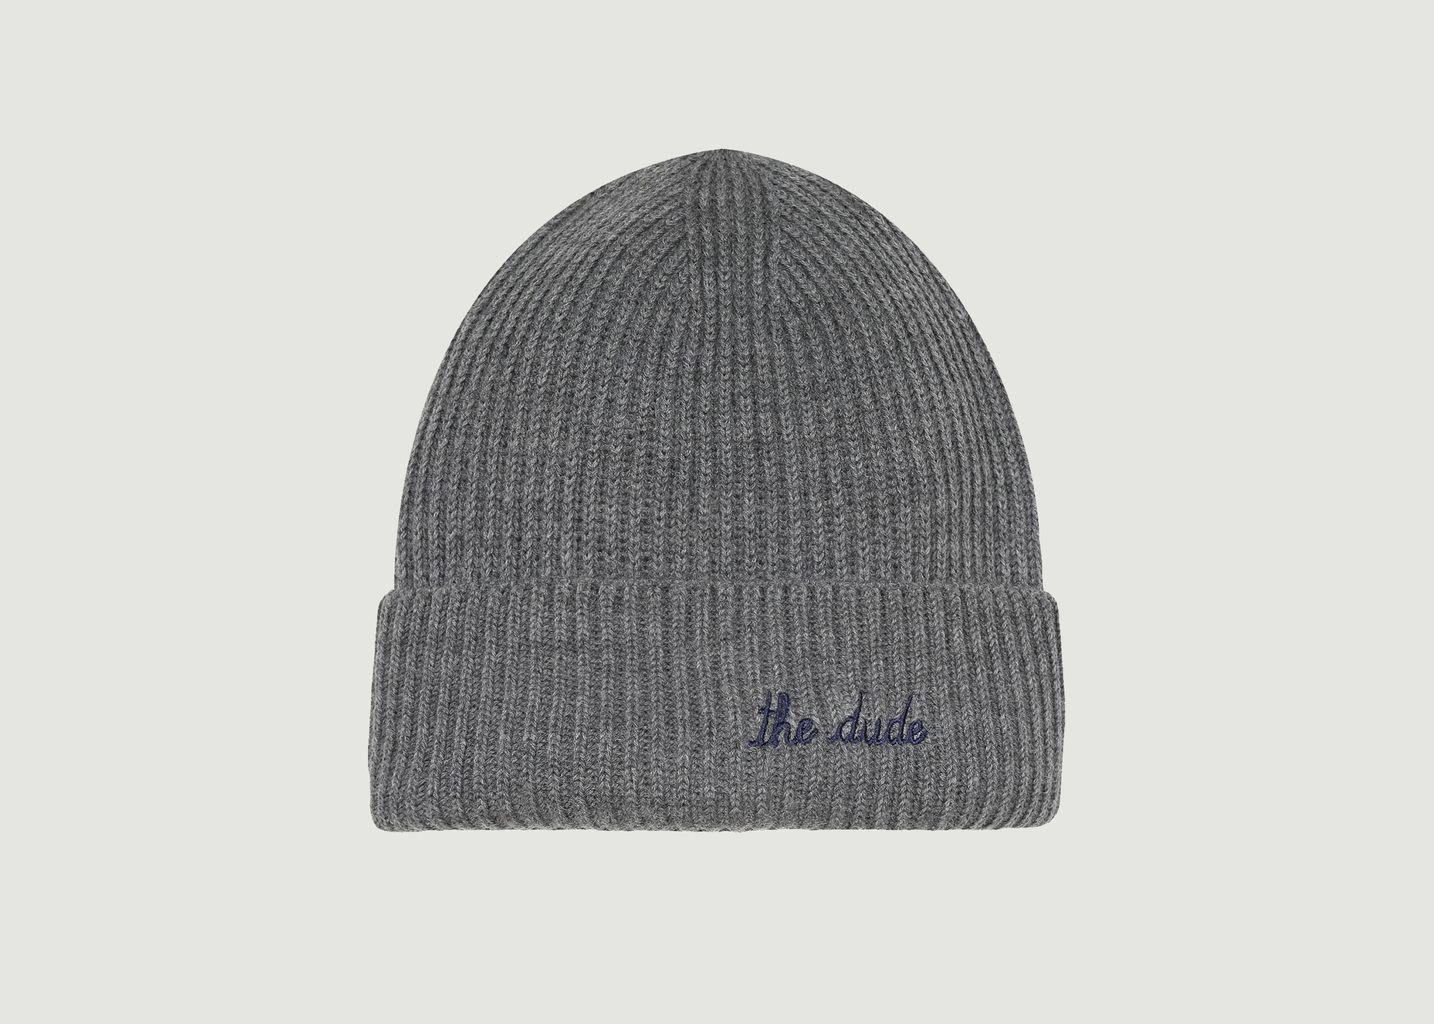 Bonnet The Dude - Maison Labiche